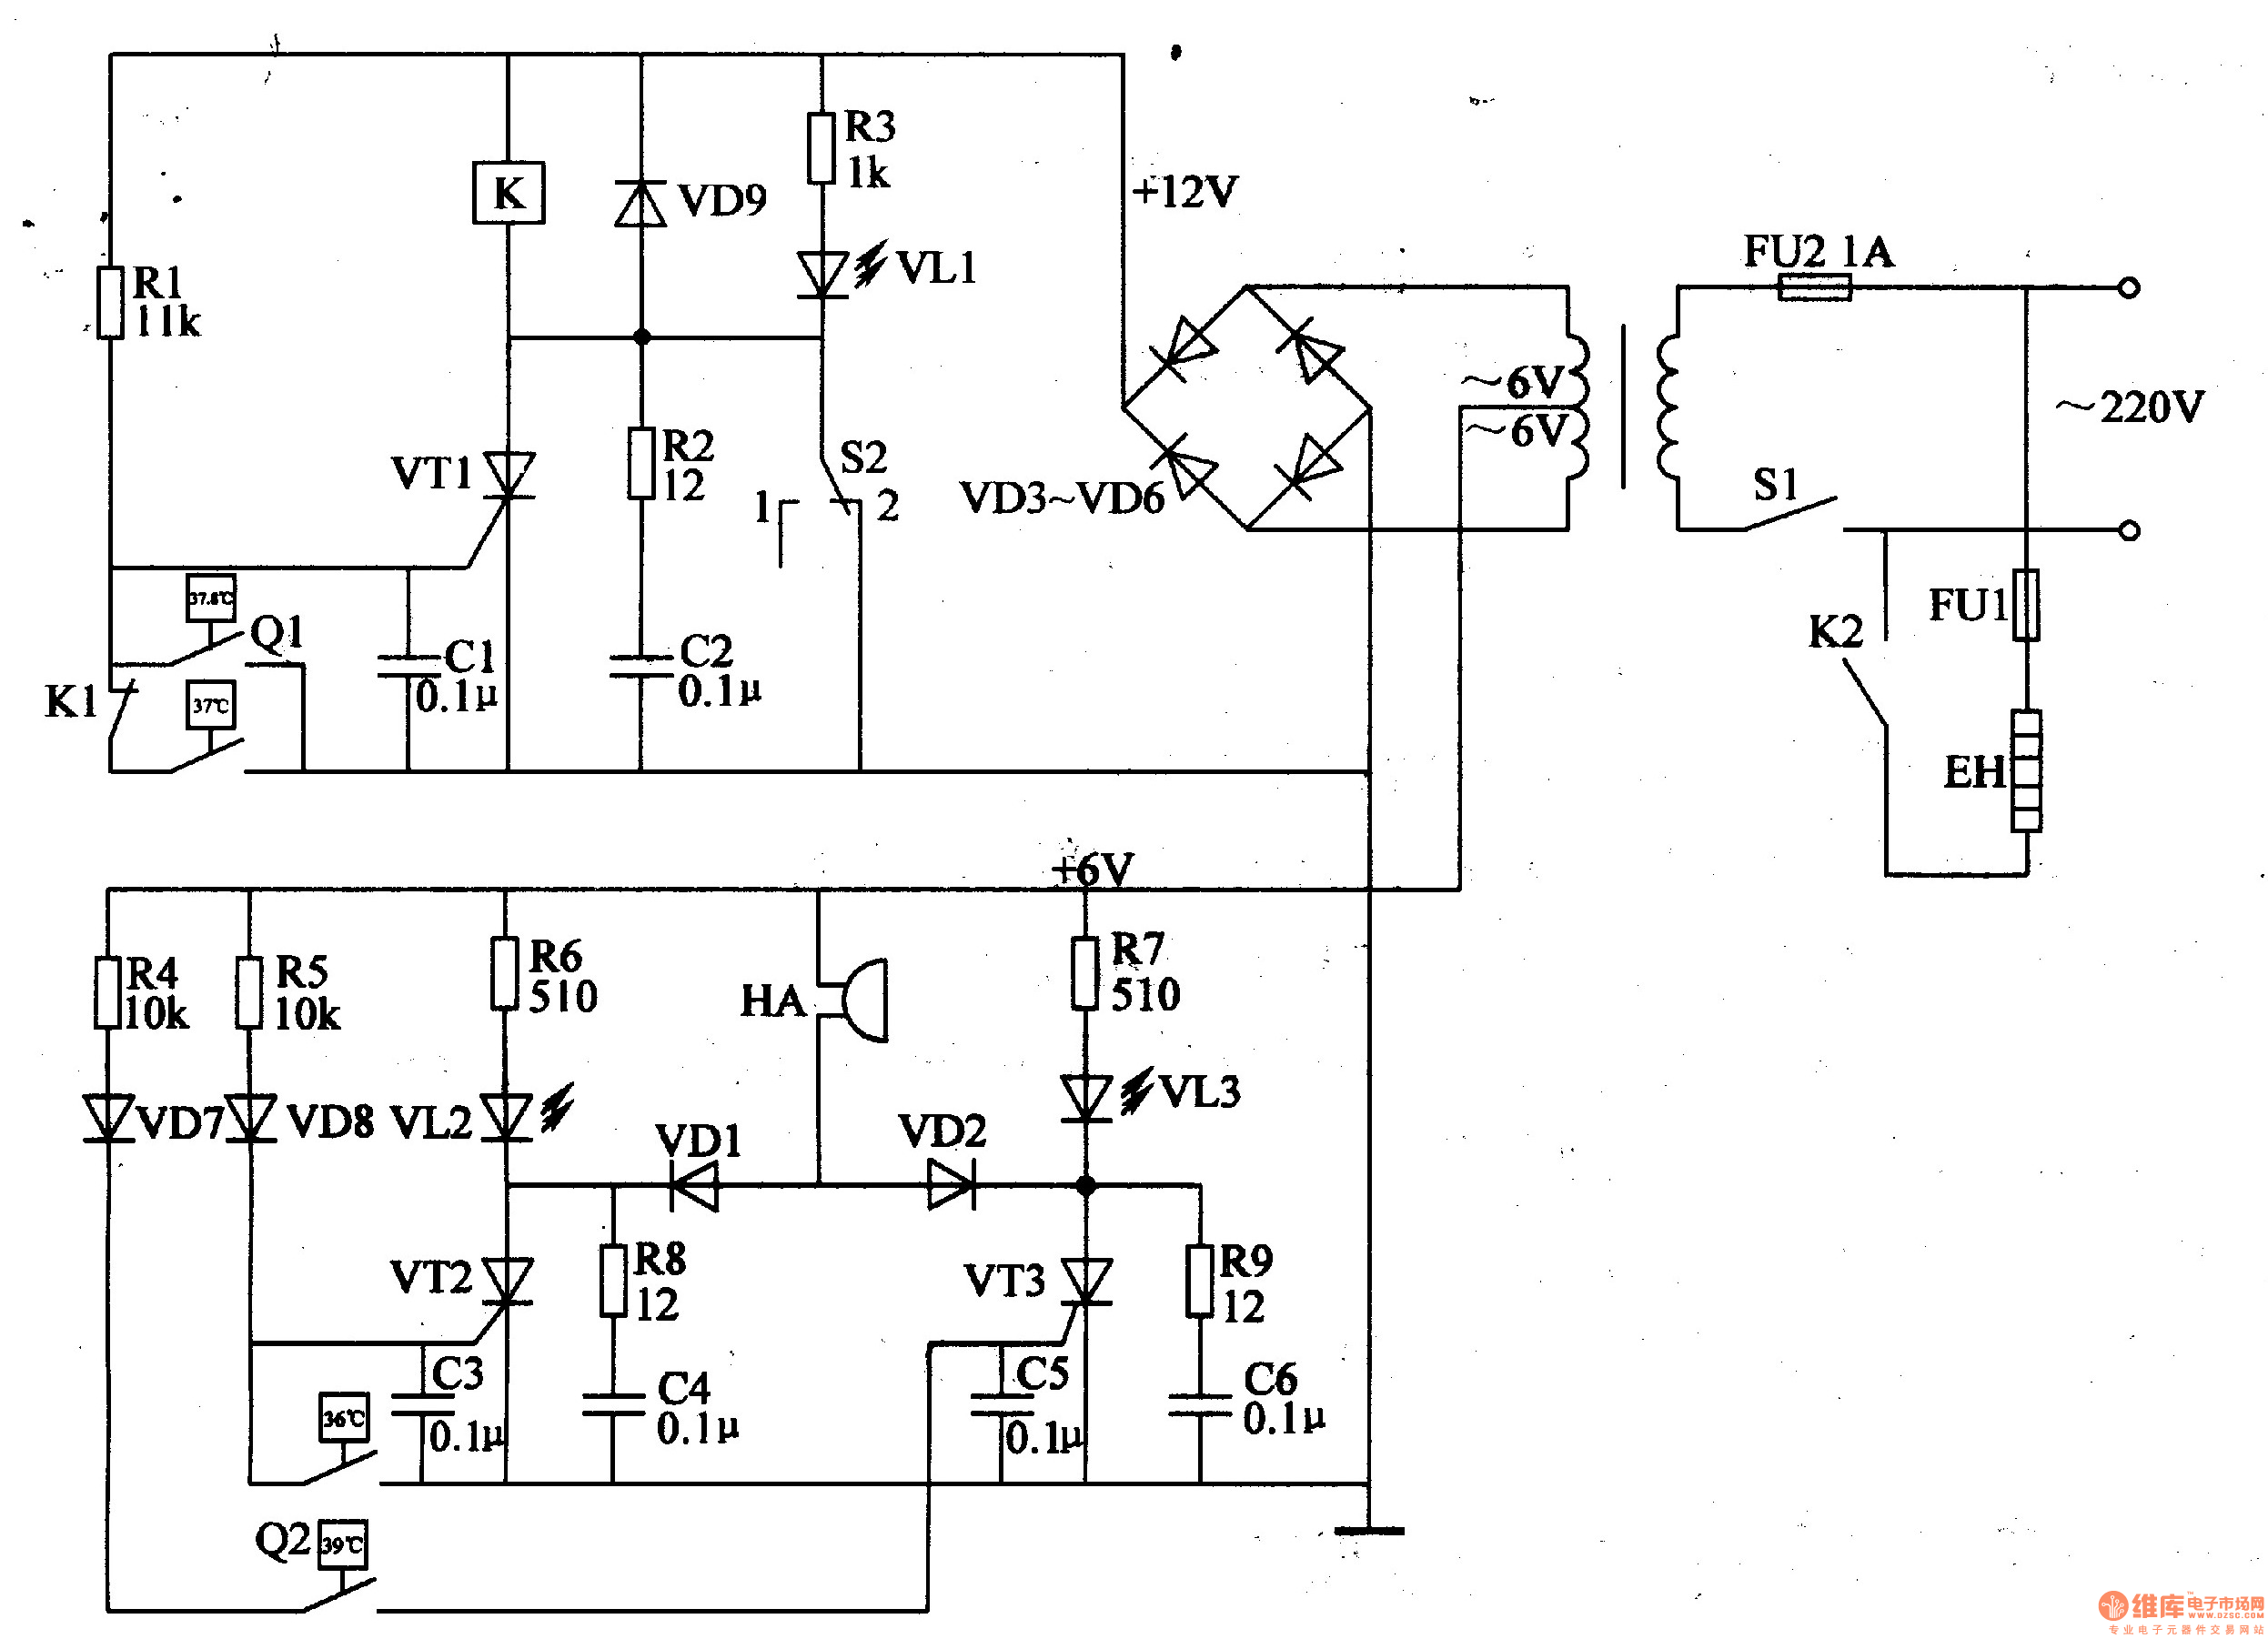 201181021836471 circuits \u003e eggs hatching incubator circuit diagram 4 l51442 next gr wiring diagram for egg incubator at panicattacktreatment.co